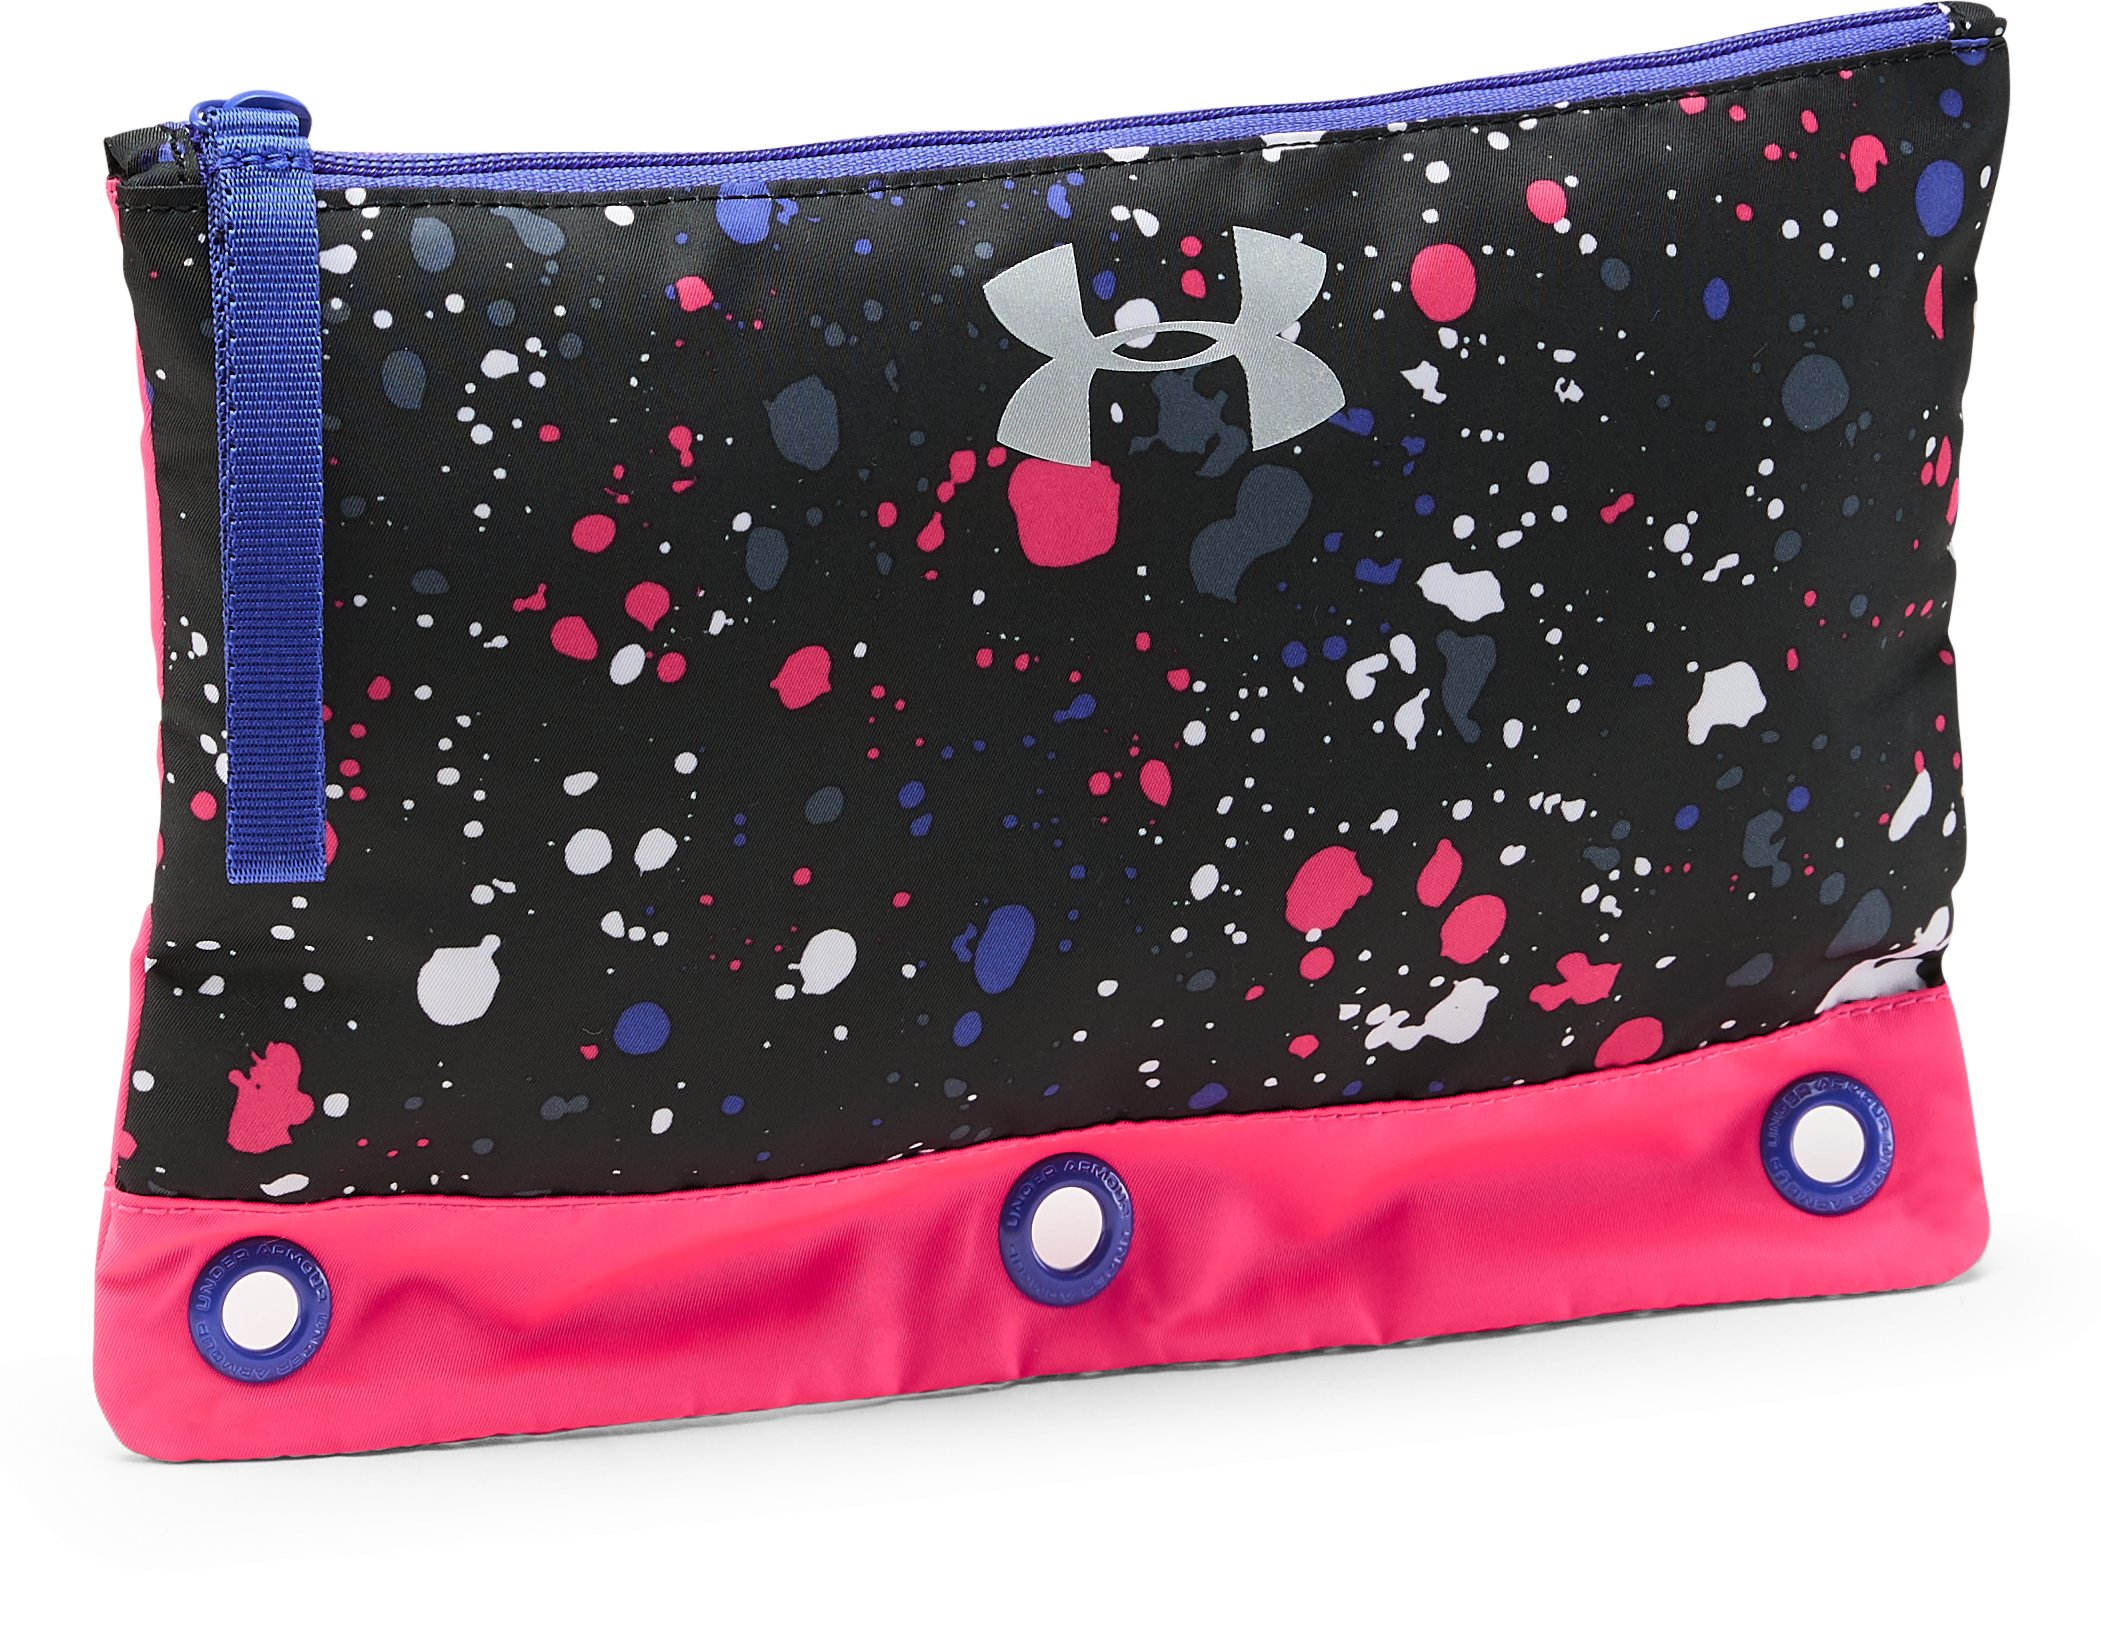 teen cases Girls' UA Pencil Case Beautiful color, my <strong>teen</strong> loves it.